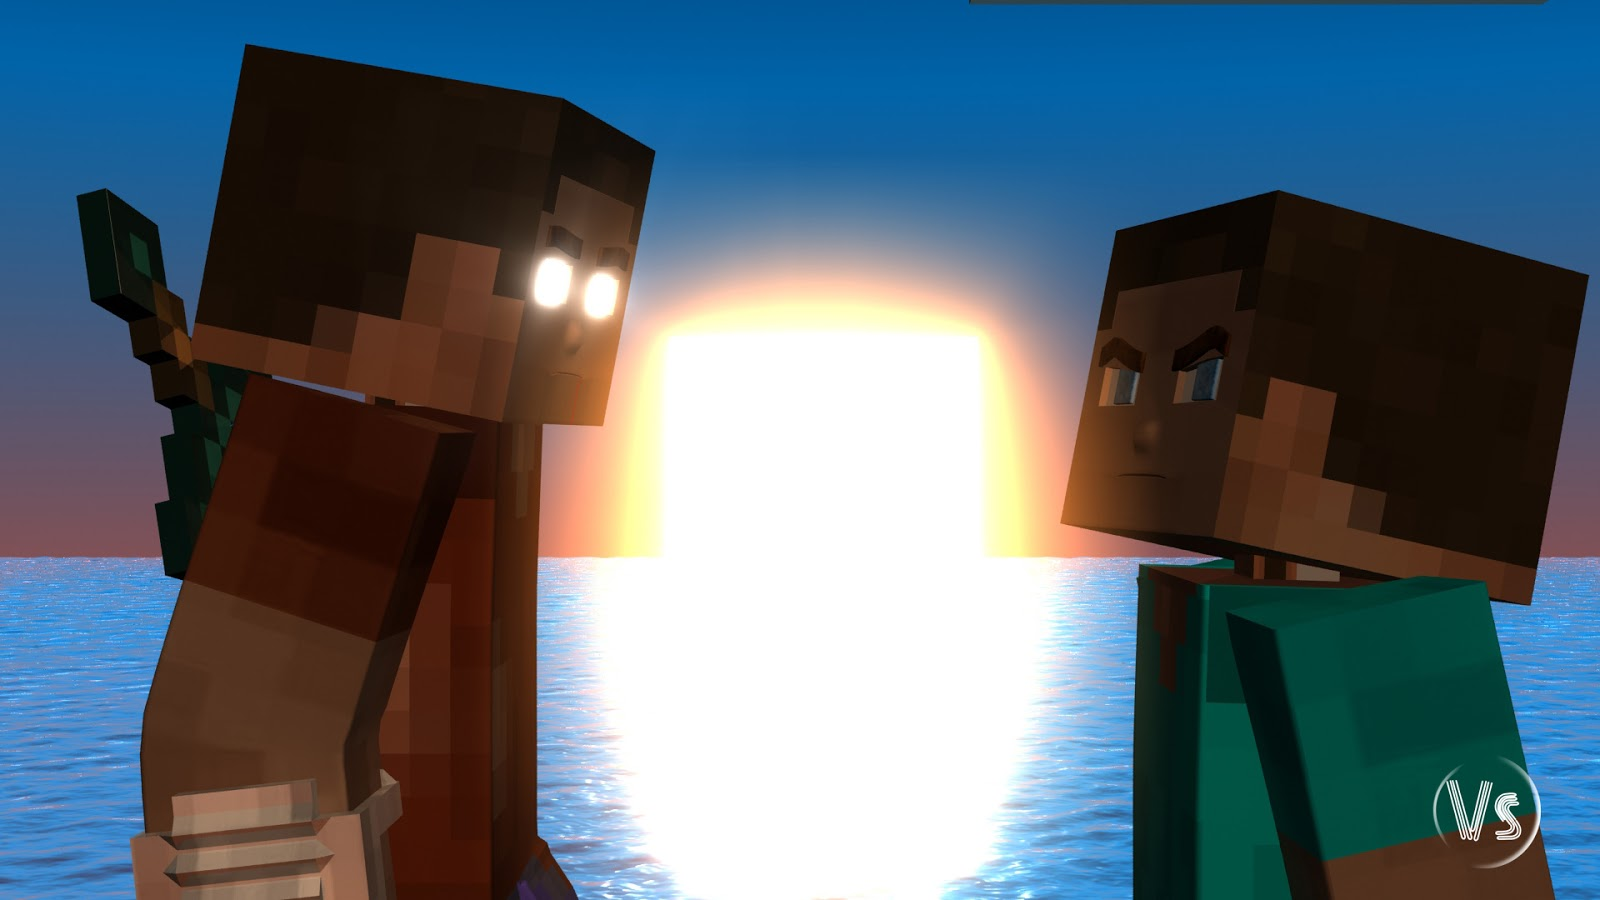 Minecraft Herobrine Vs Steve Wallpaper Profile